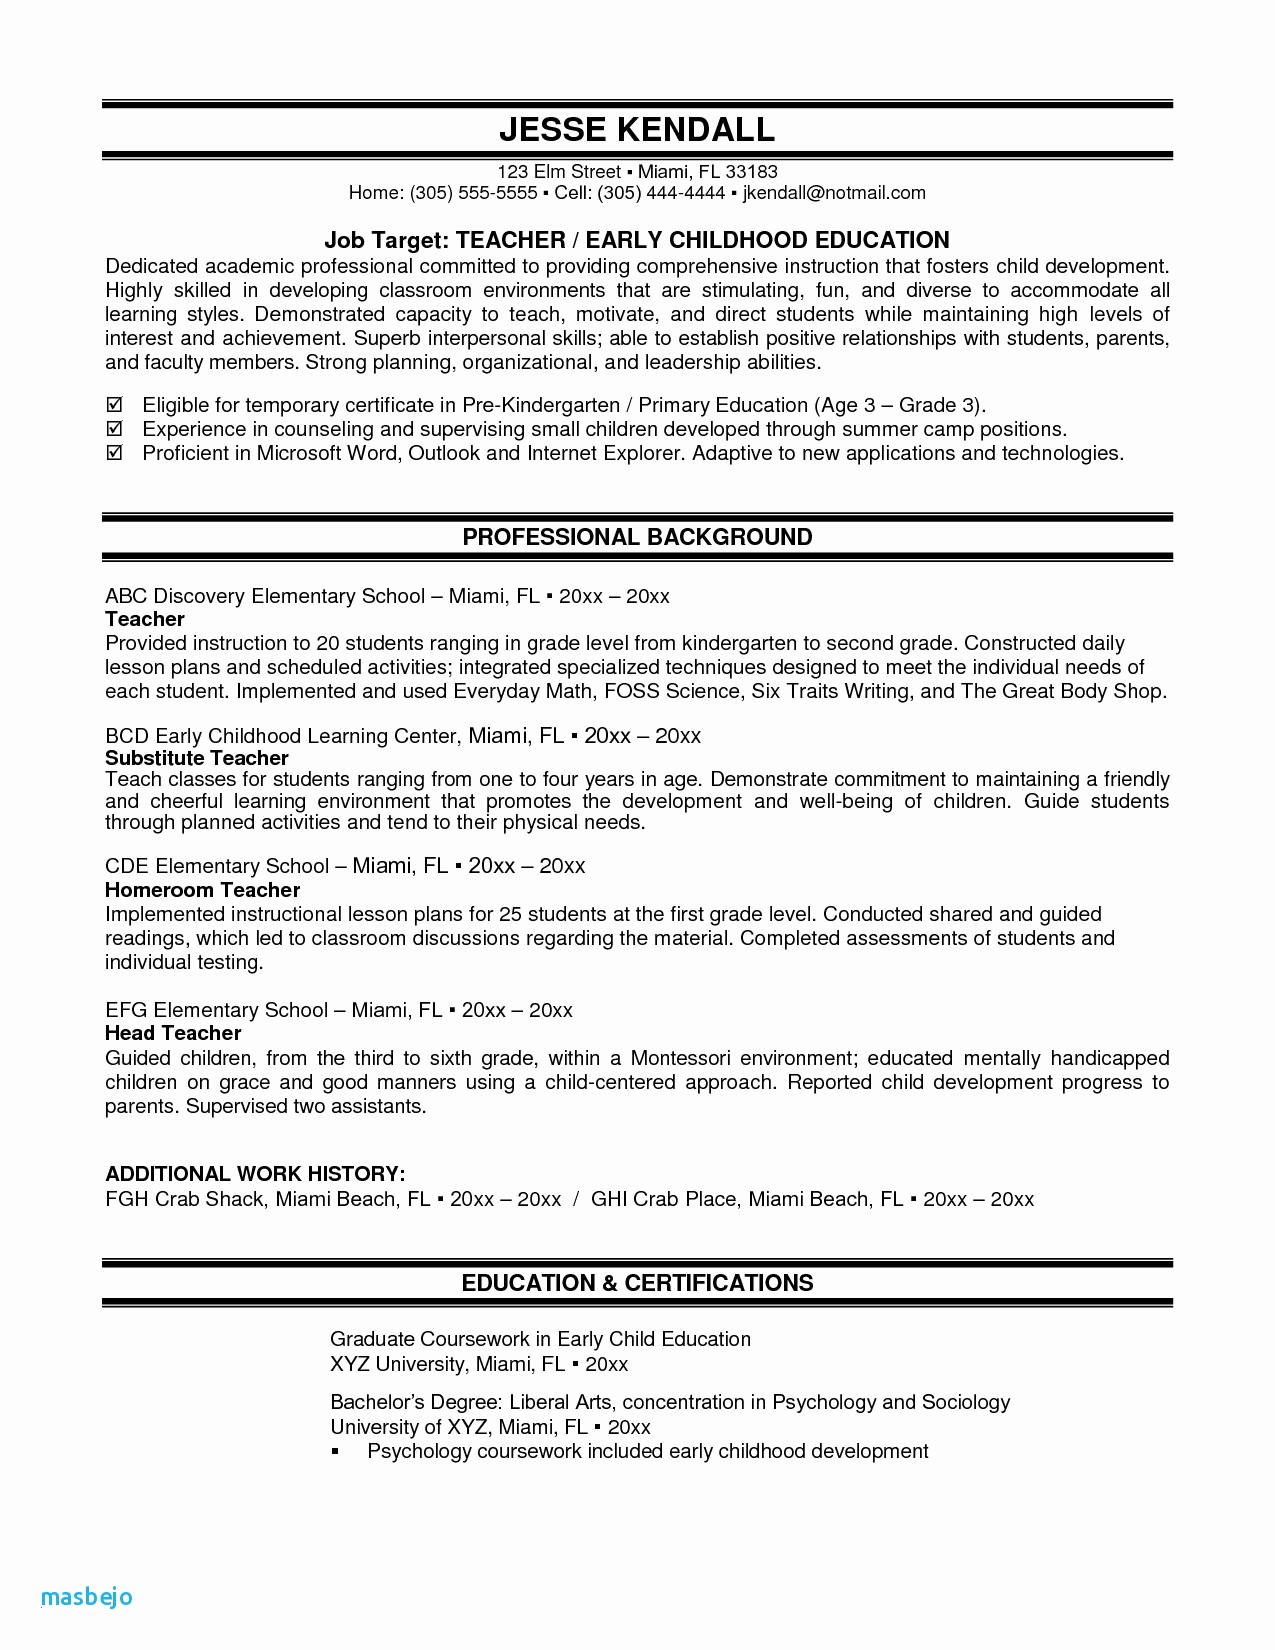 Child Care Resume Examples - 25 New Child Care Resume Examples